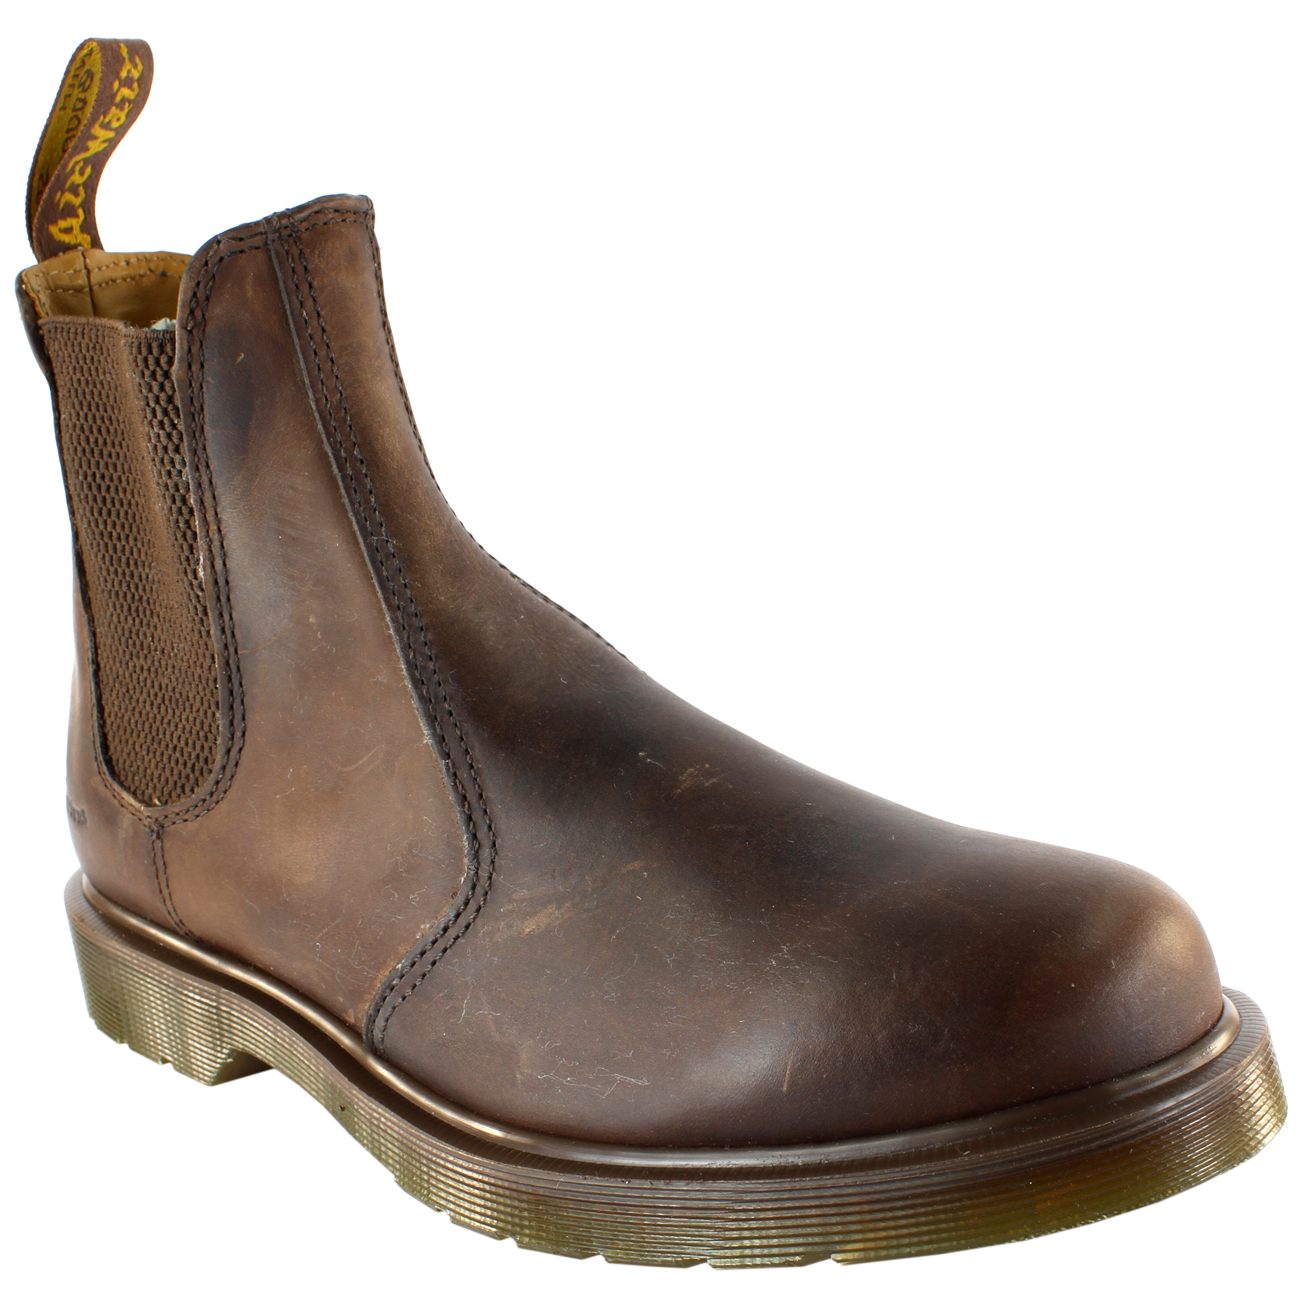 Free Shipping on Many Items! Shop from the world's largest selection and best deals for Chelsea, Ankle Boots UK Size 9 for Men. Shop with confidence on eBay!